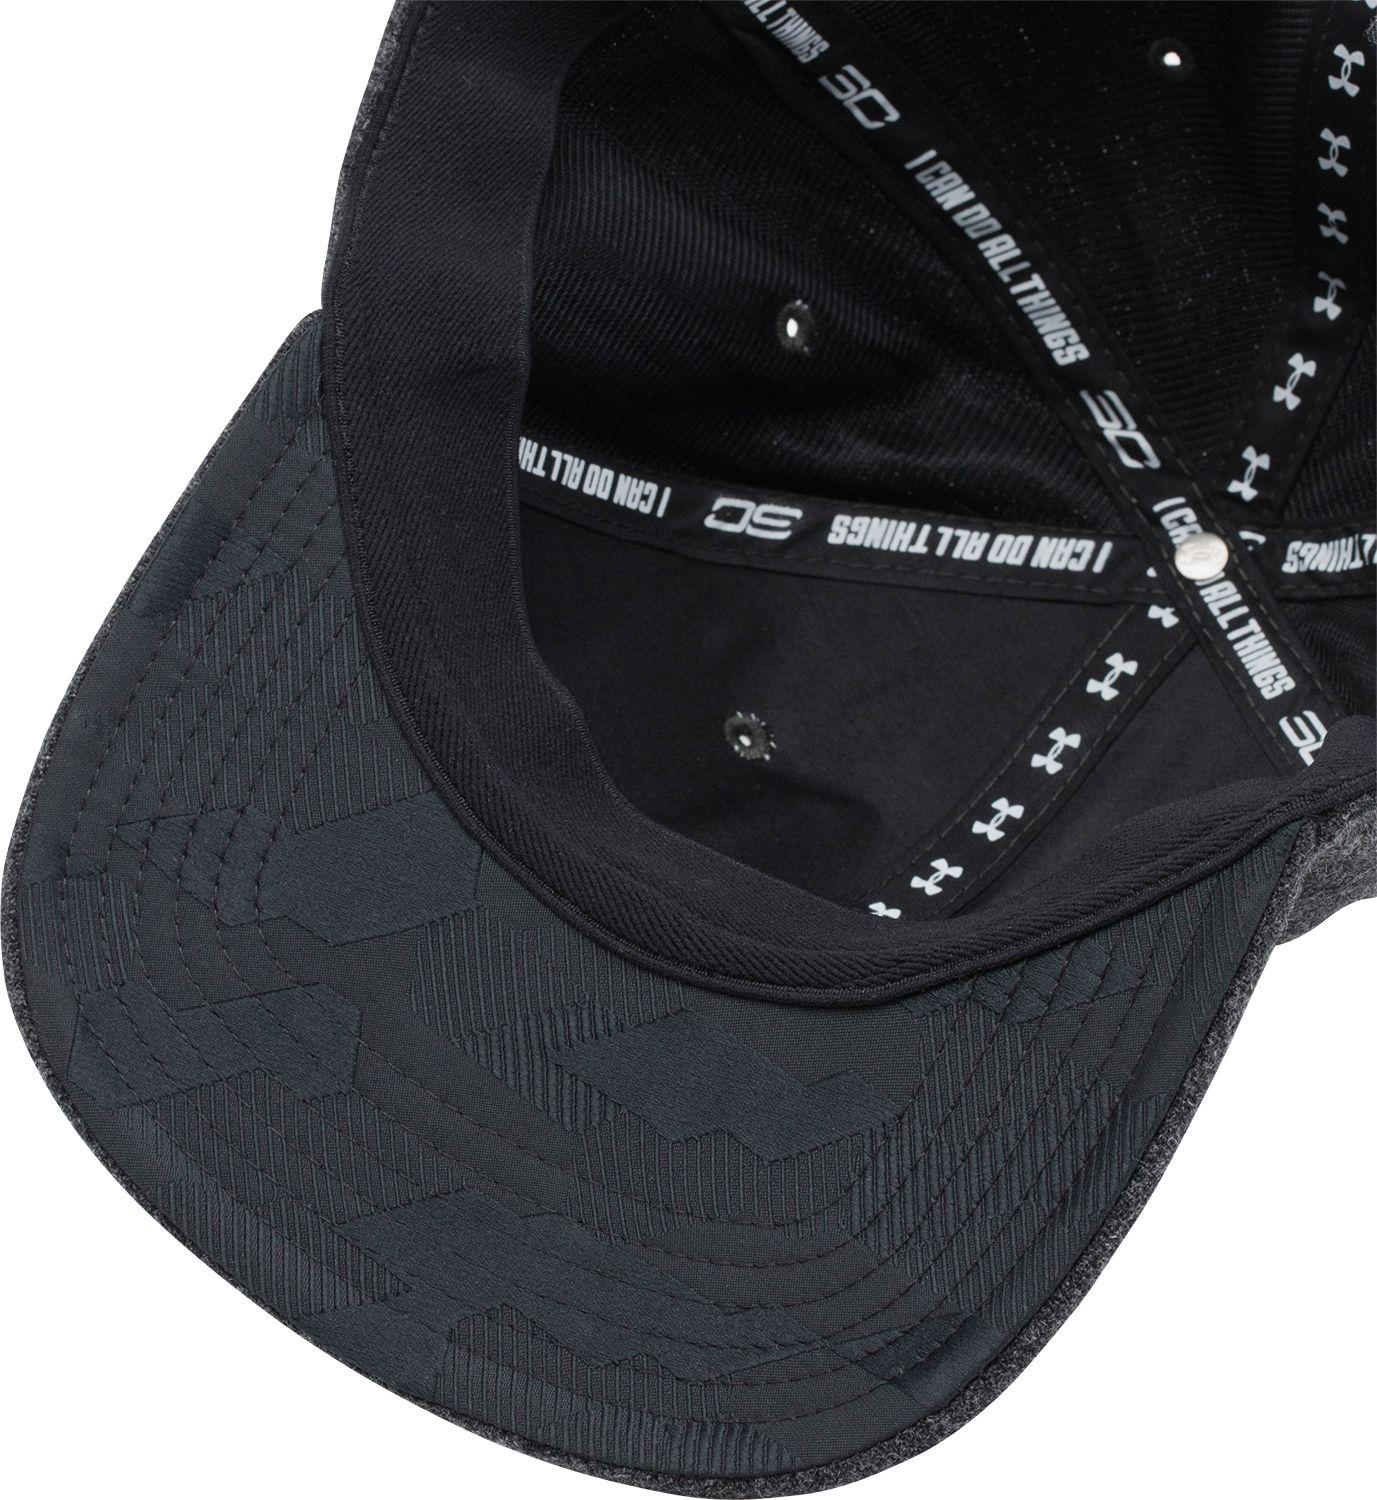 Lyst - Under Armour Sc30 Elite Basketball Hat in Black for Men 1f7f1634704